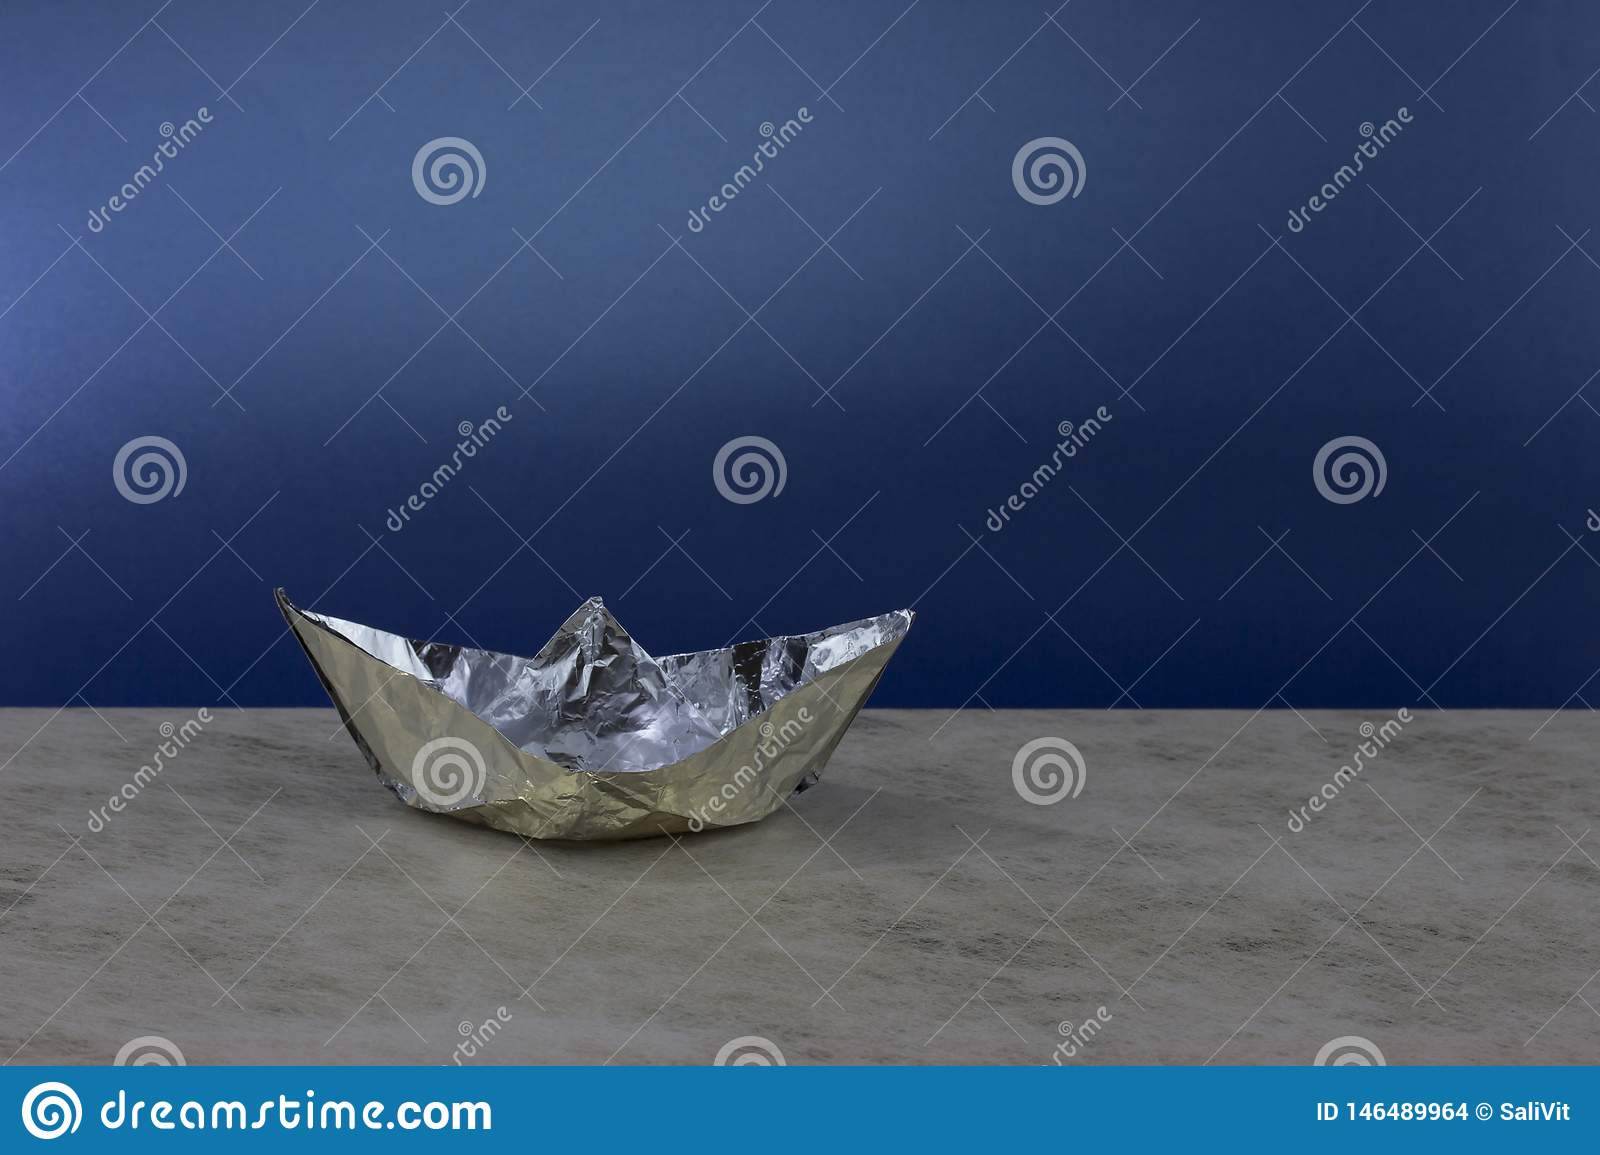 Paper boat made of aluminum foil.